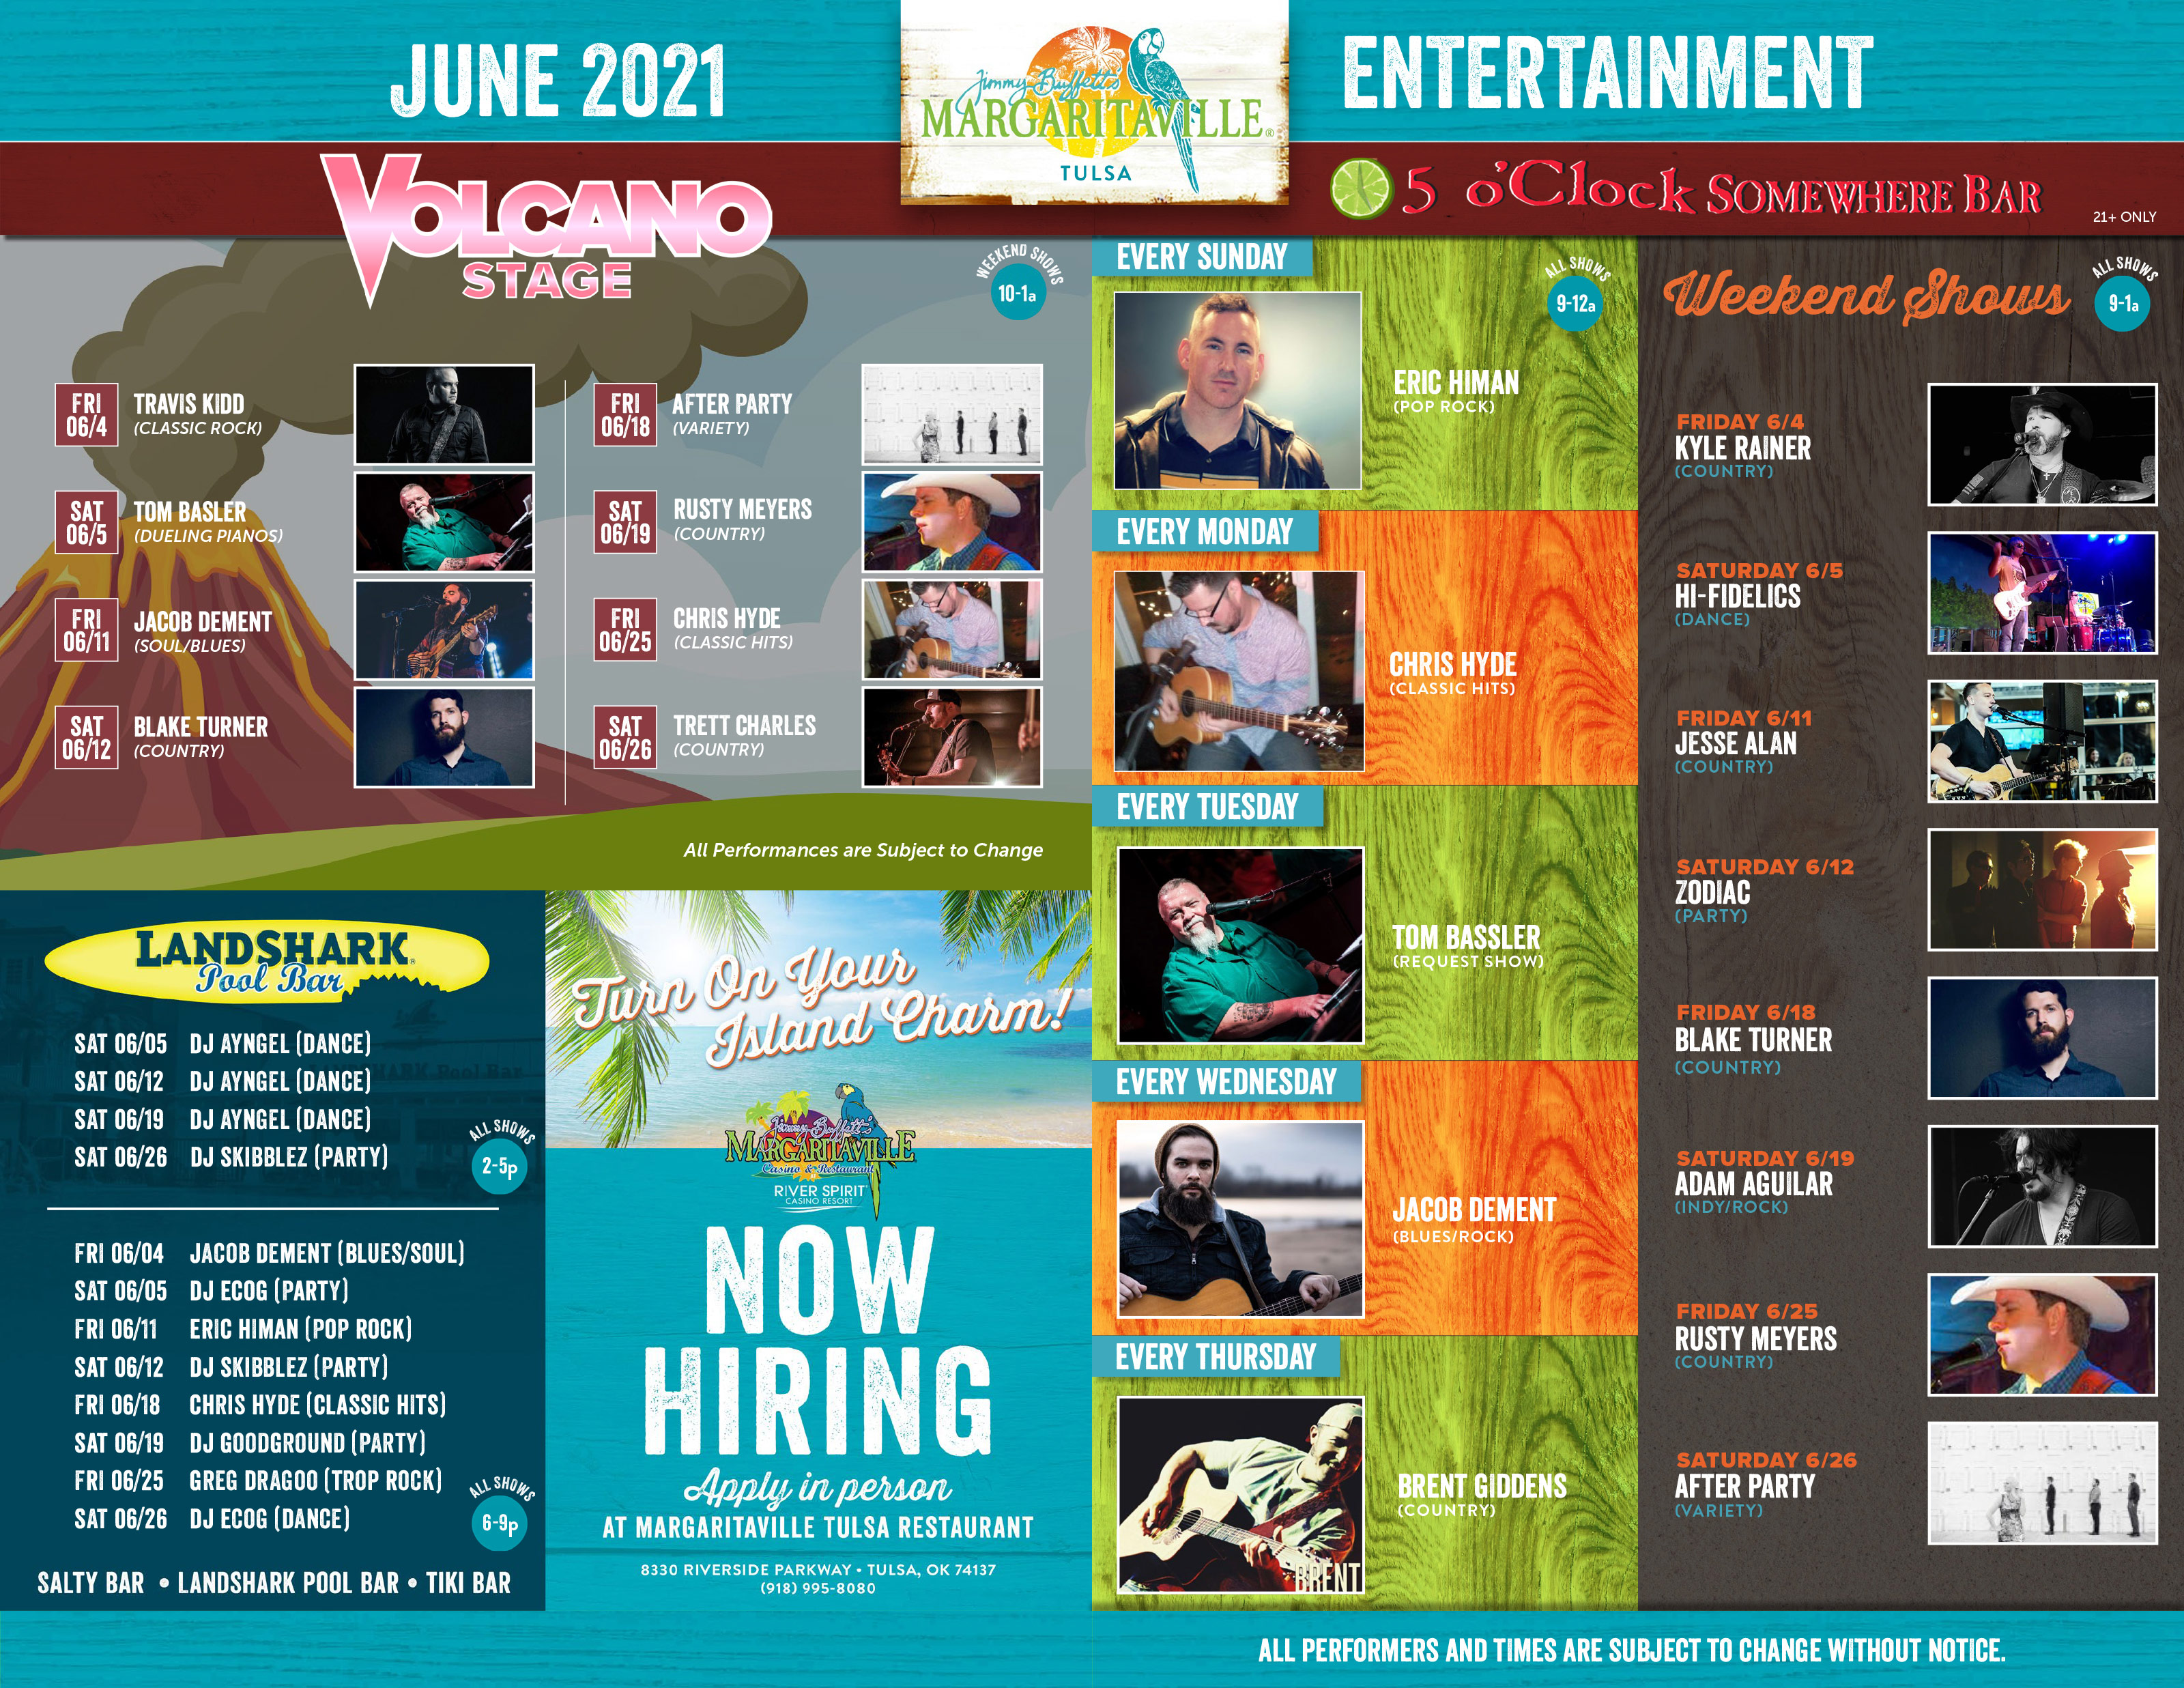 Margaritaville Tulsa June 2021 Calendar of Events. Visually impaired customers please call for assistance or read next tab